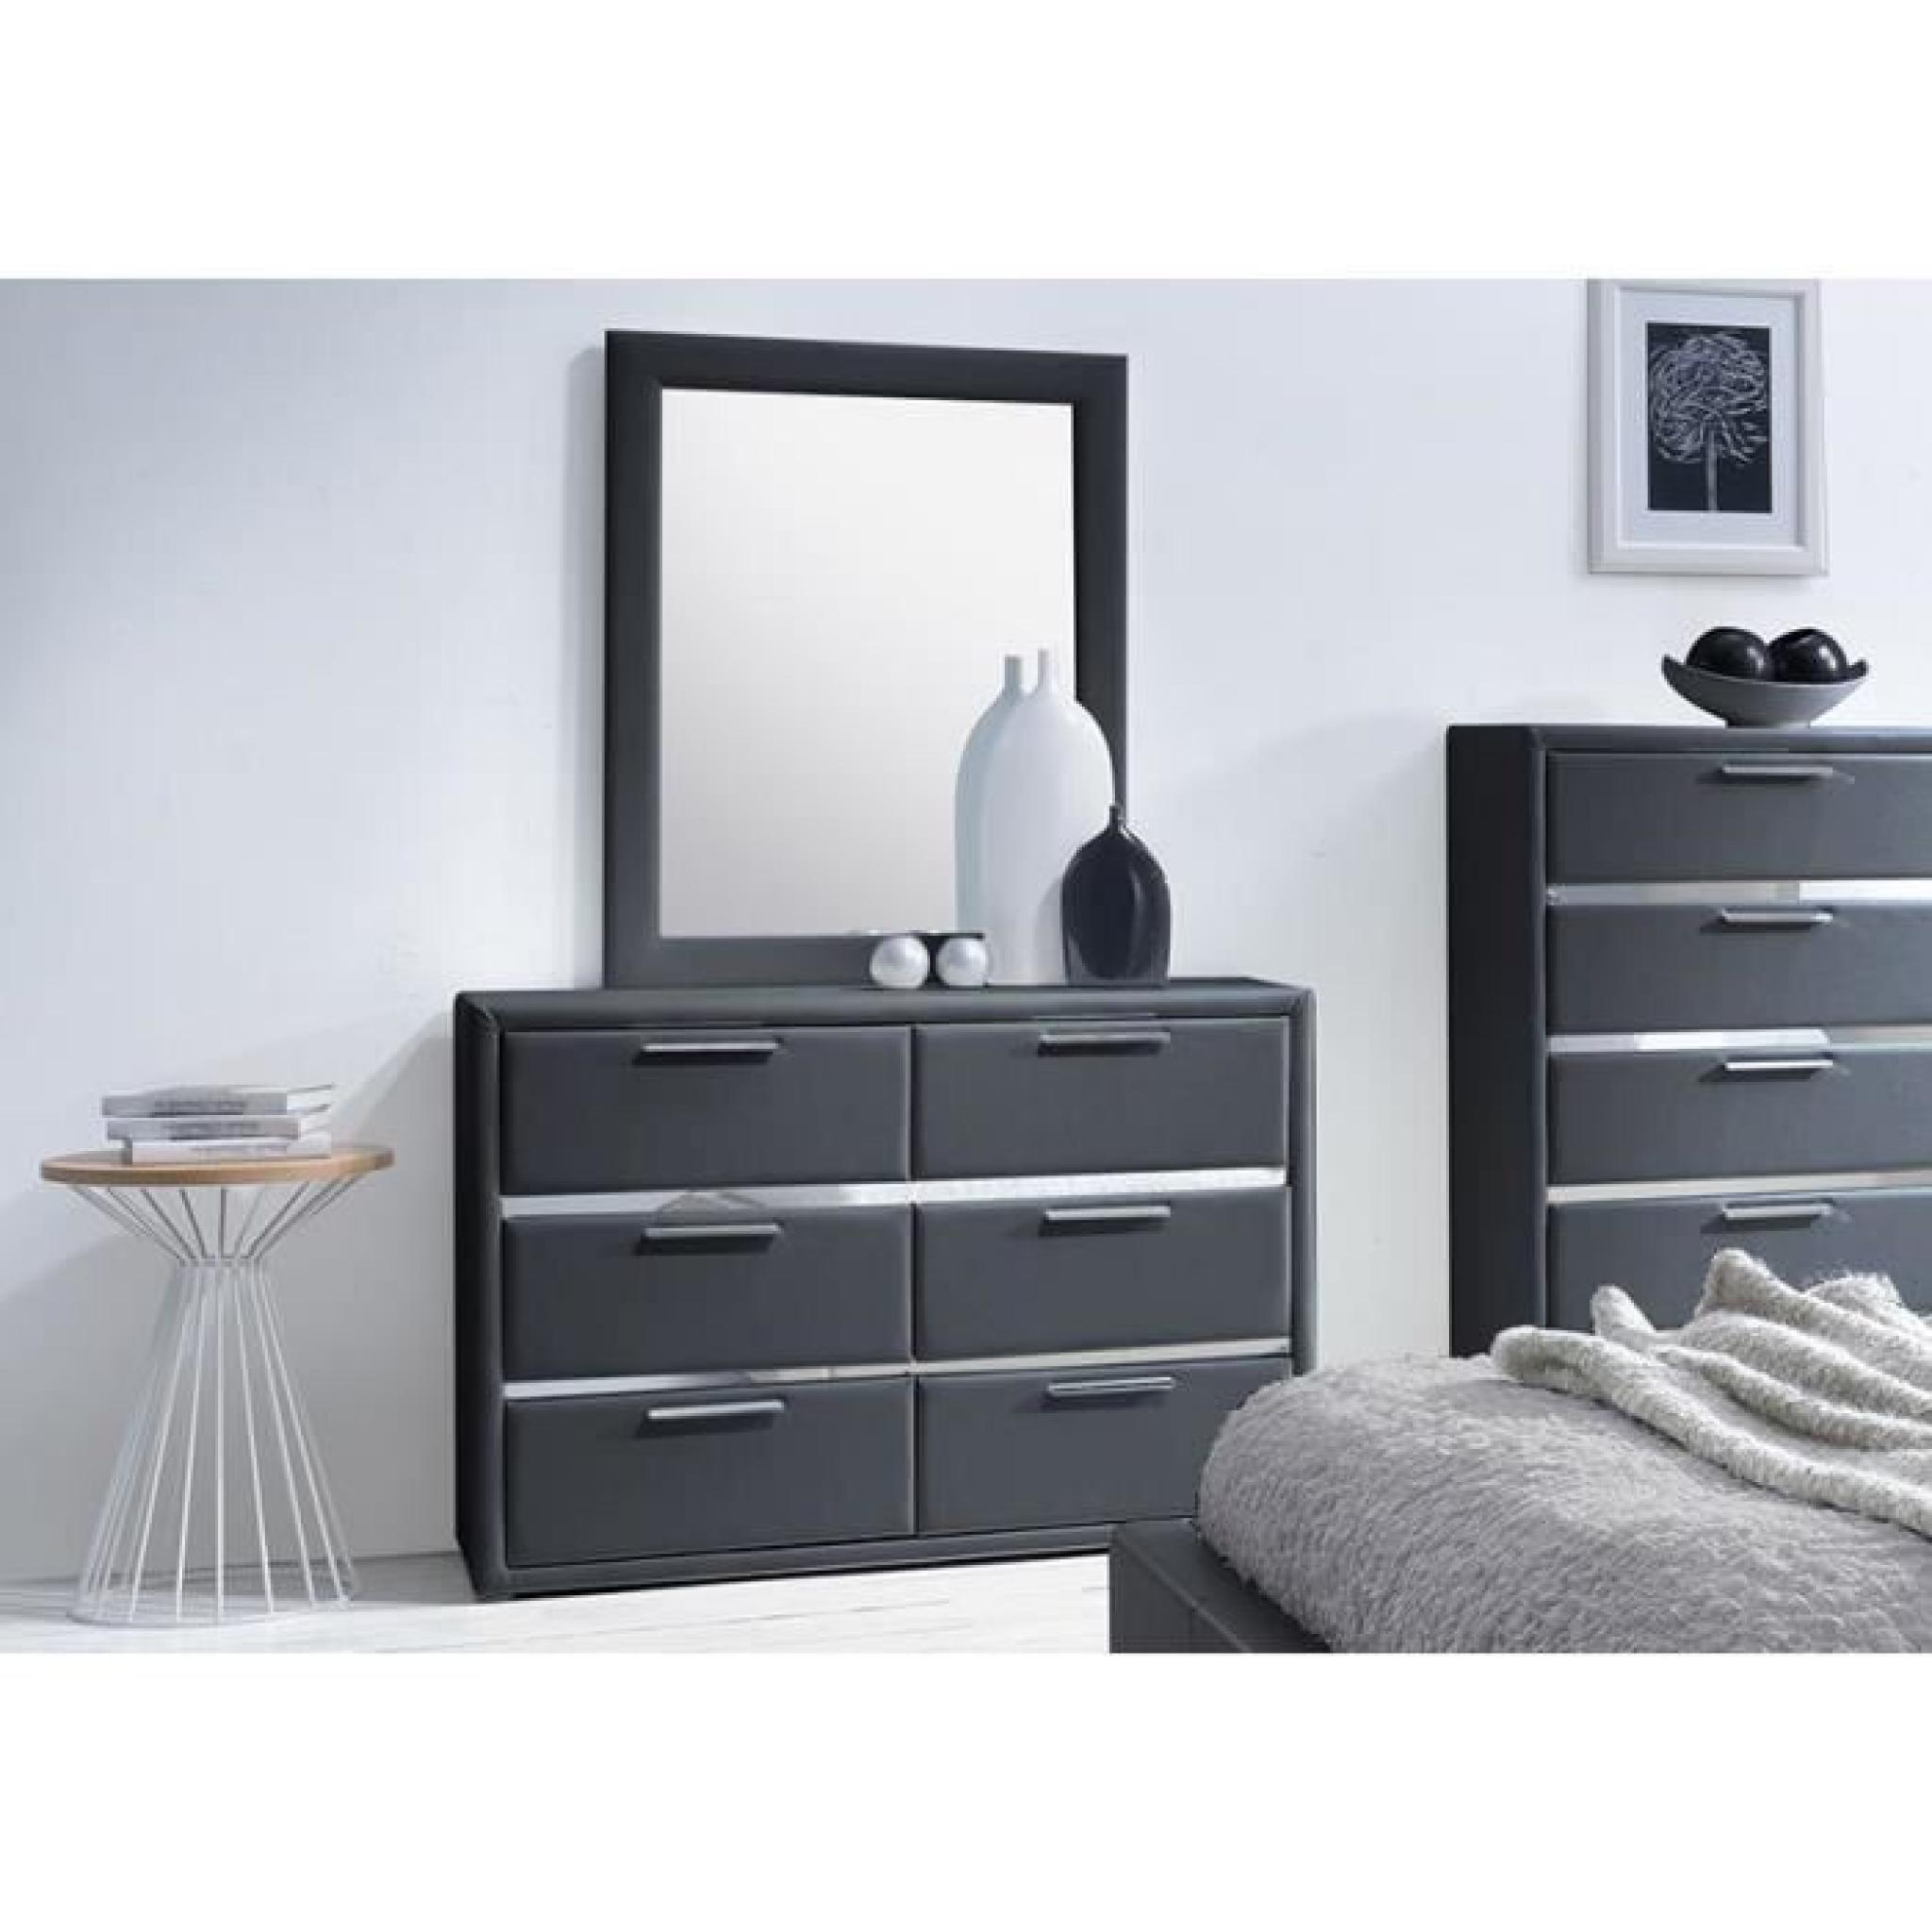 commode simili noir 6 tiroirs avec miroir exia achat vente commode pas cher couleur et. Black Bedroom Furniture Sets. Home Design Ideas